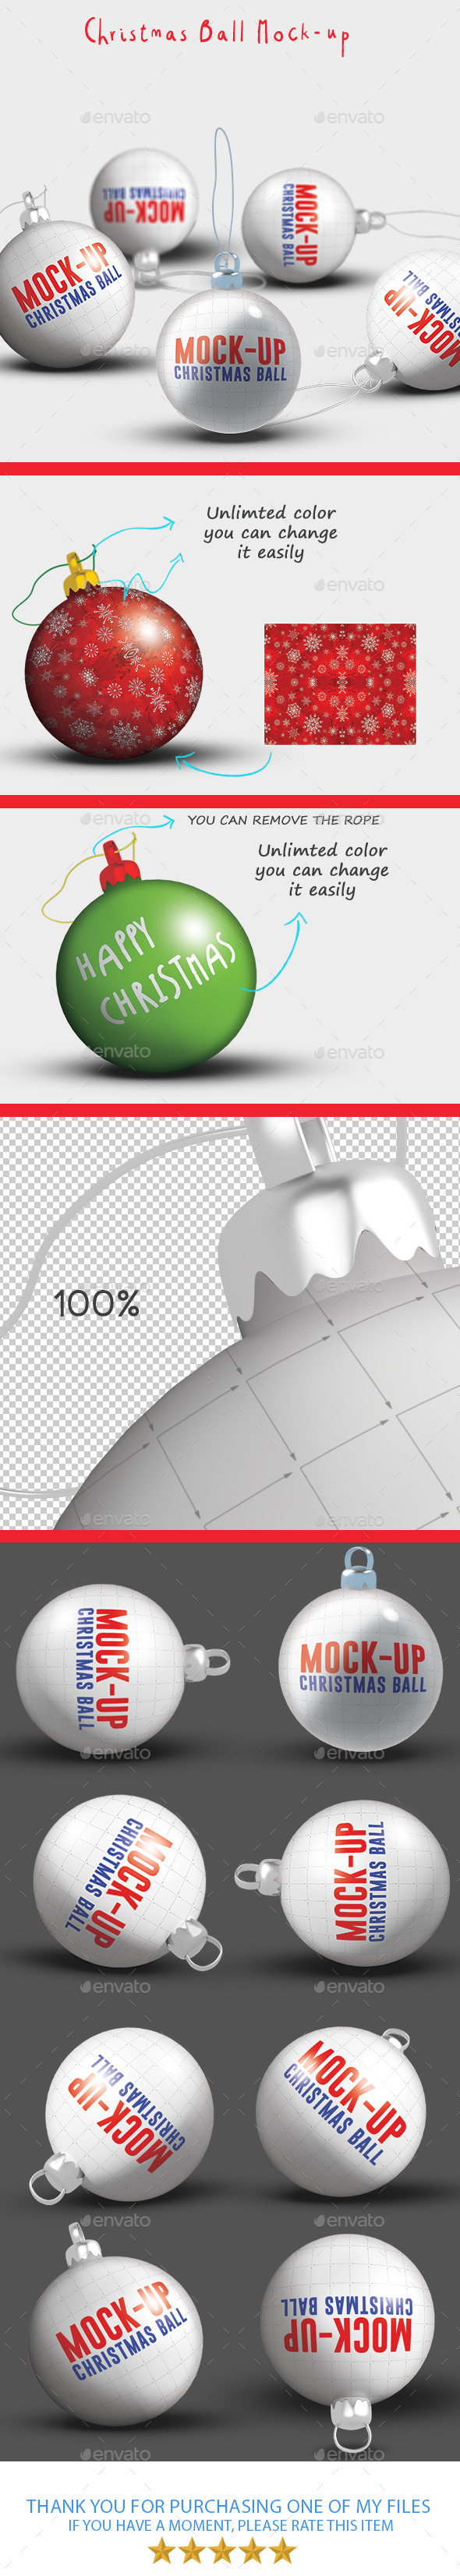 GraphicRiver Christmas Ball Mock-up 9675027